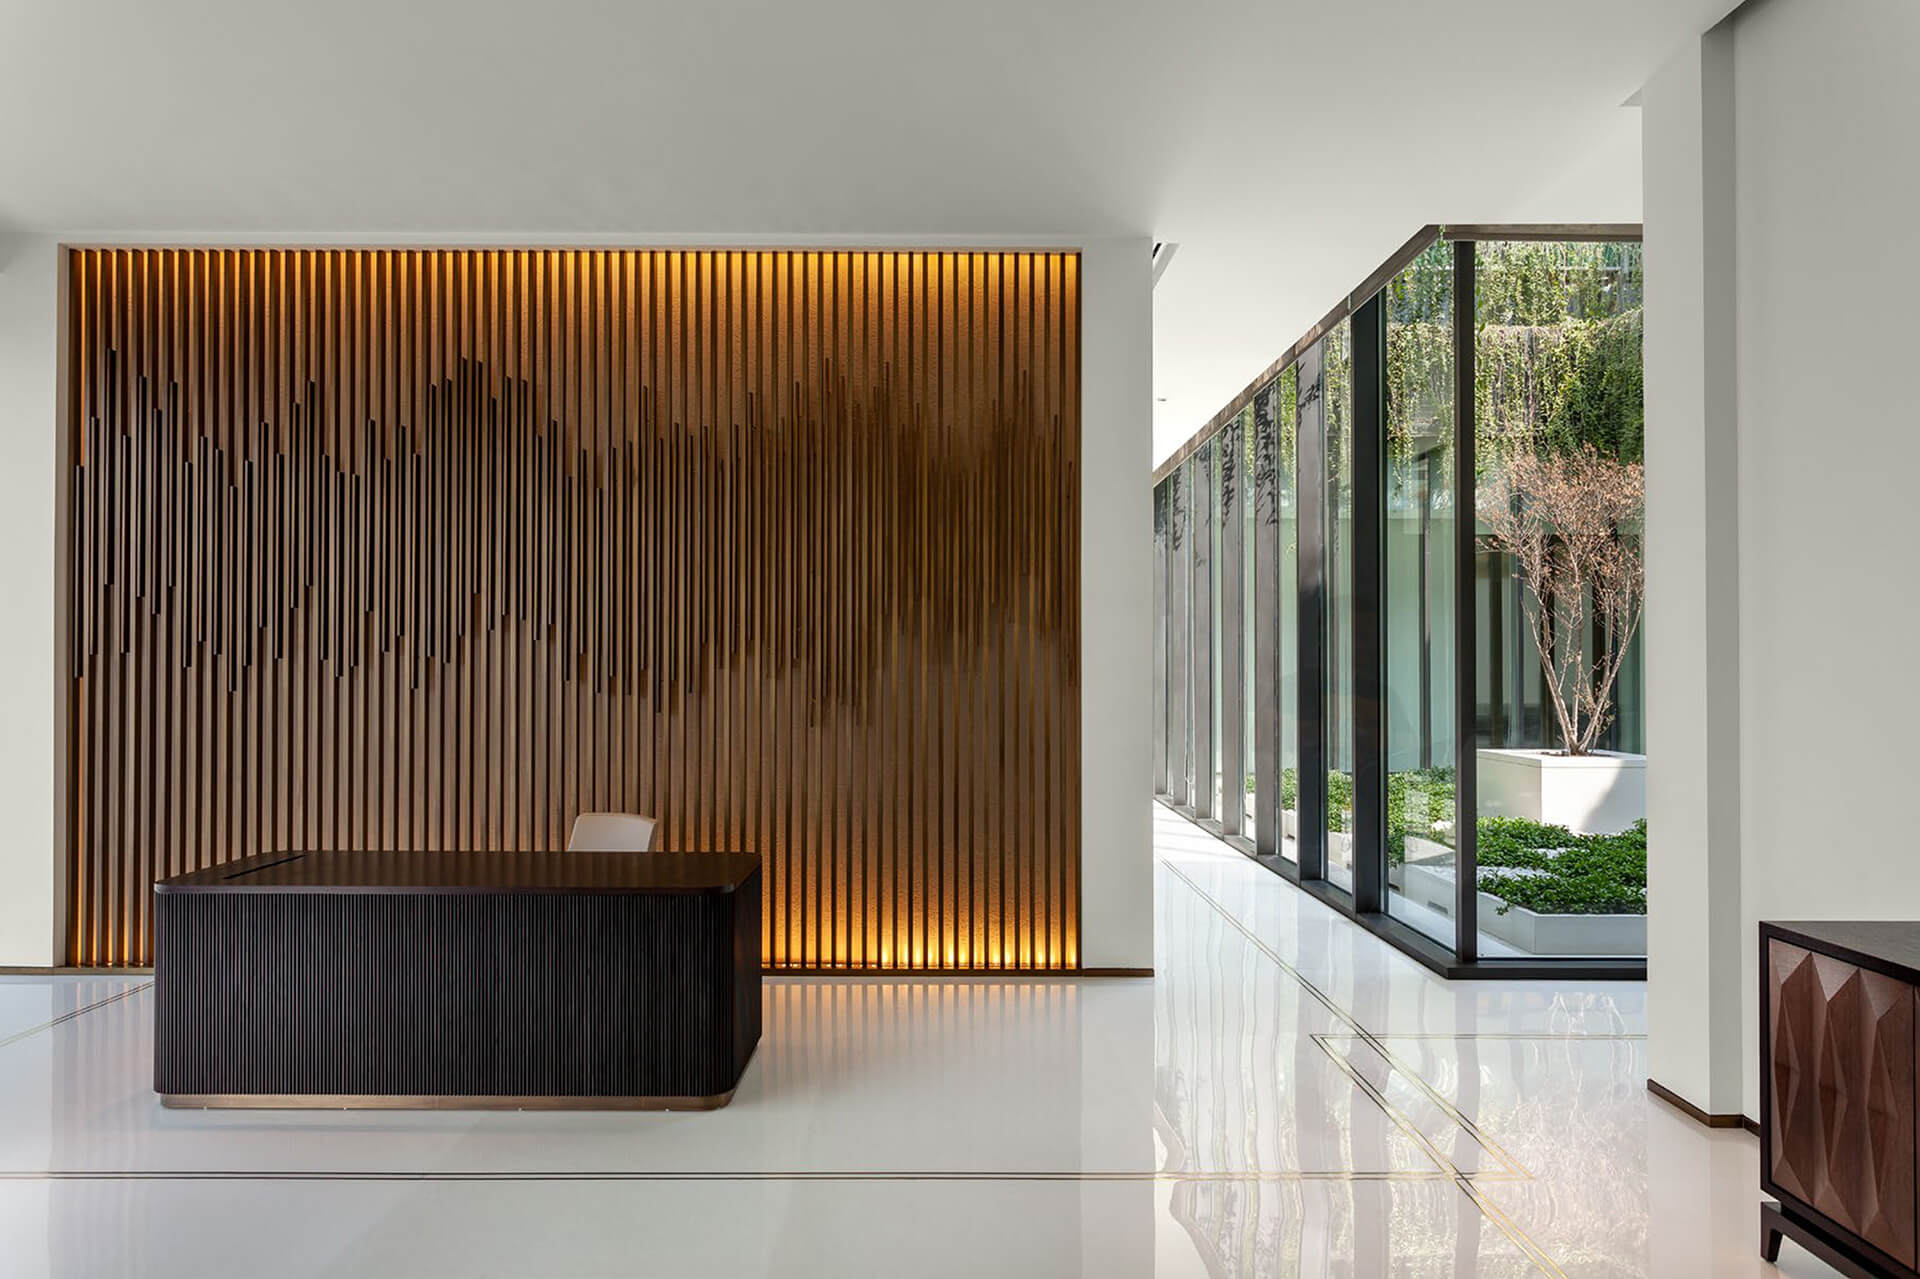 An informal reception greets visitors into the corporate office | East India Hotel's headquarters by Architecture Discipline | STIRworld